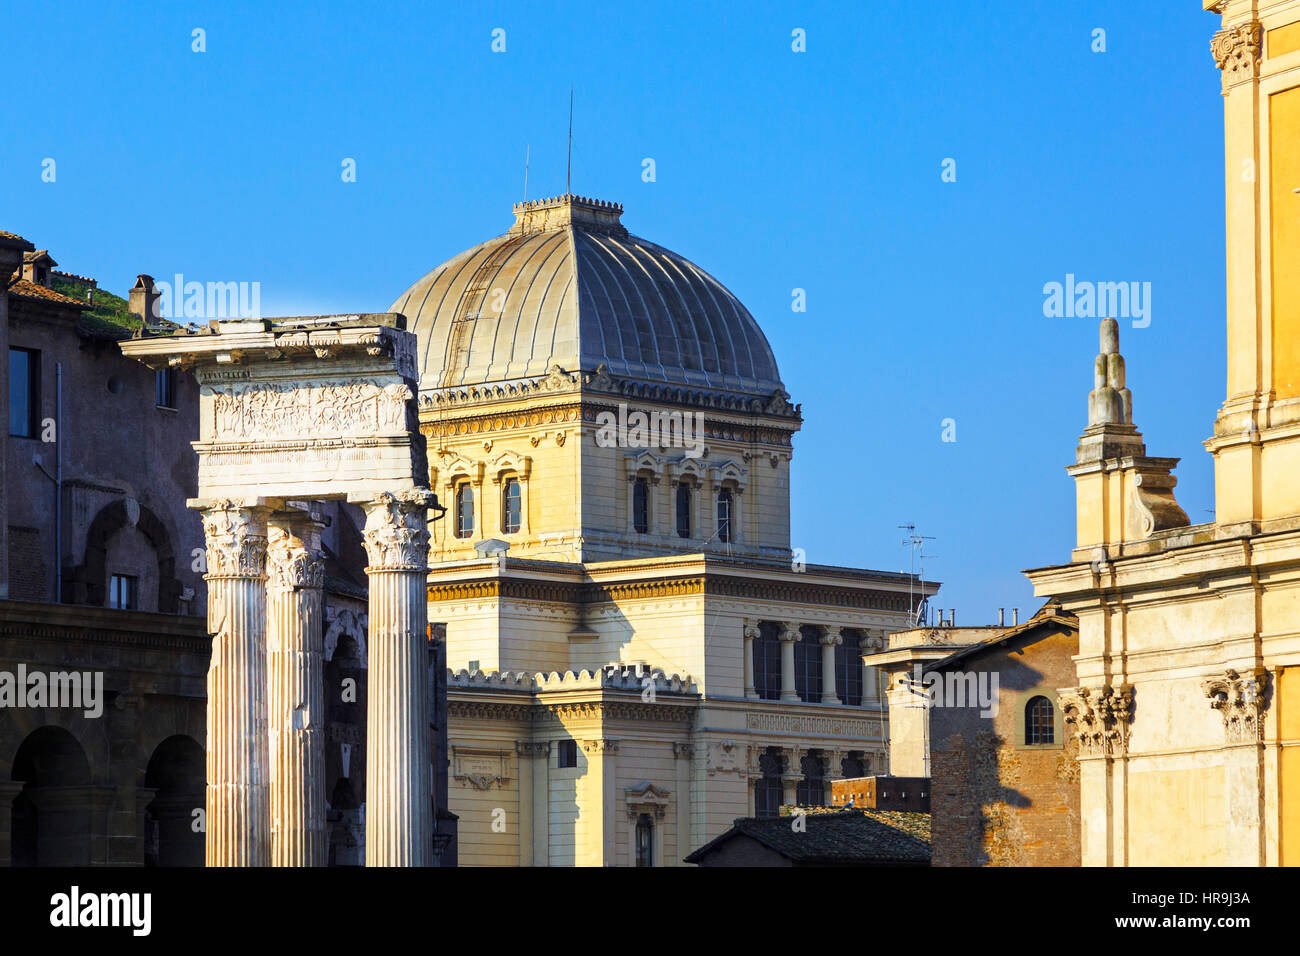 Building details with old Roman pillars on Via San Marco, Rome, Italy Stock Photo